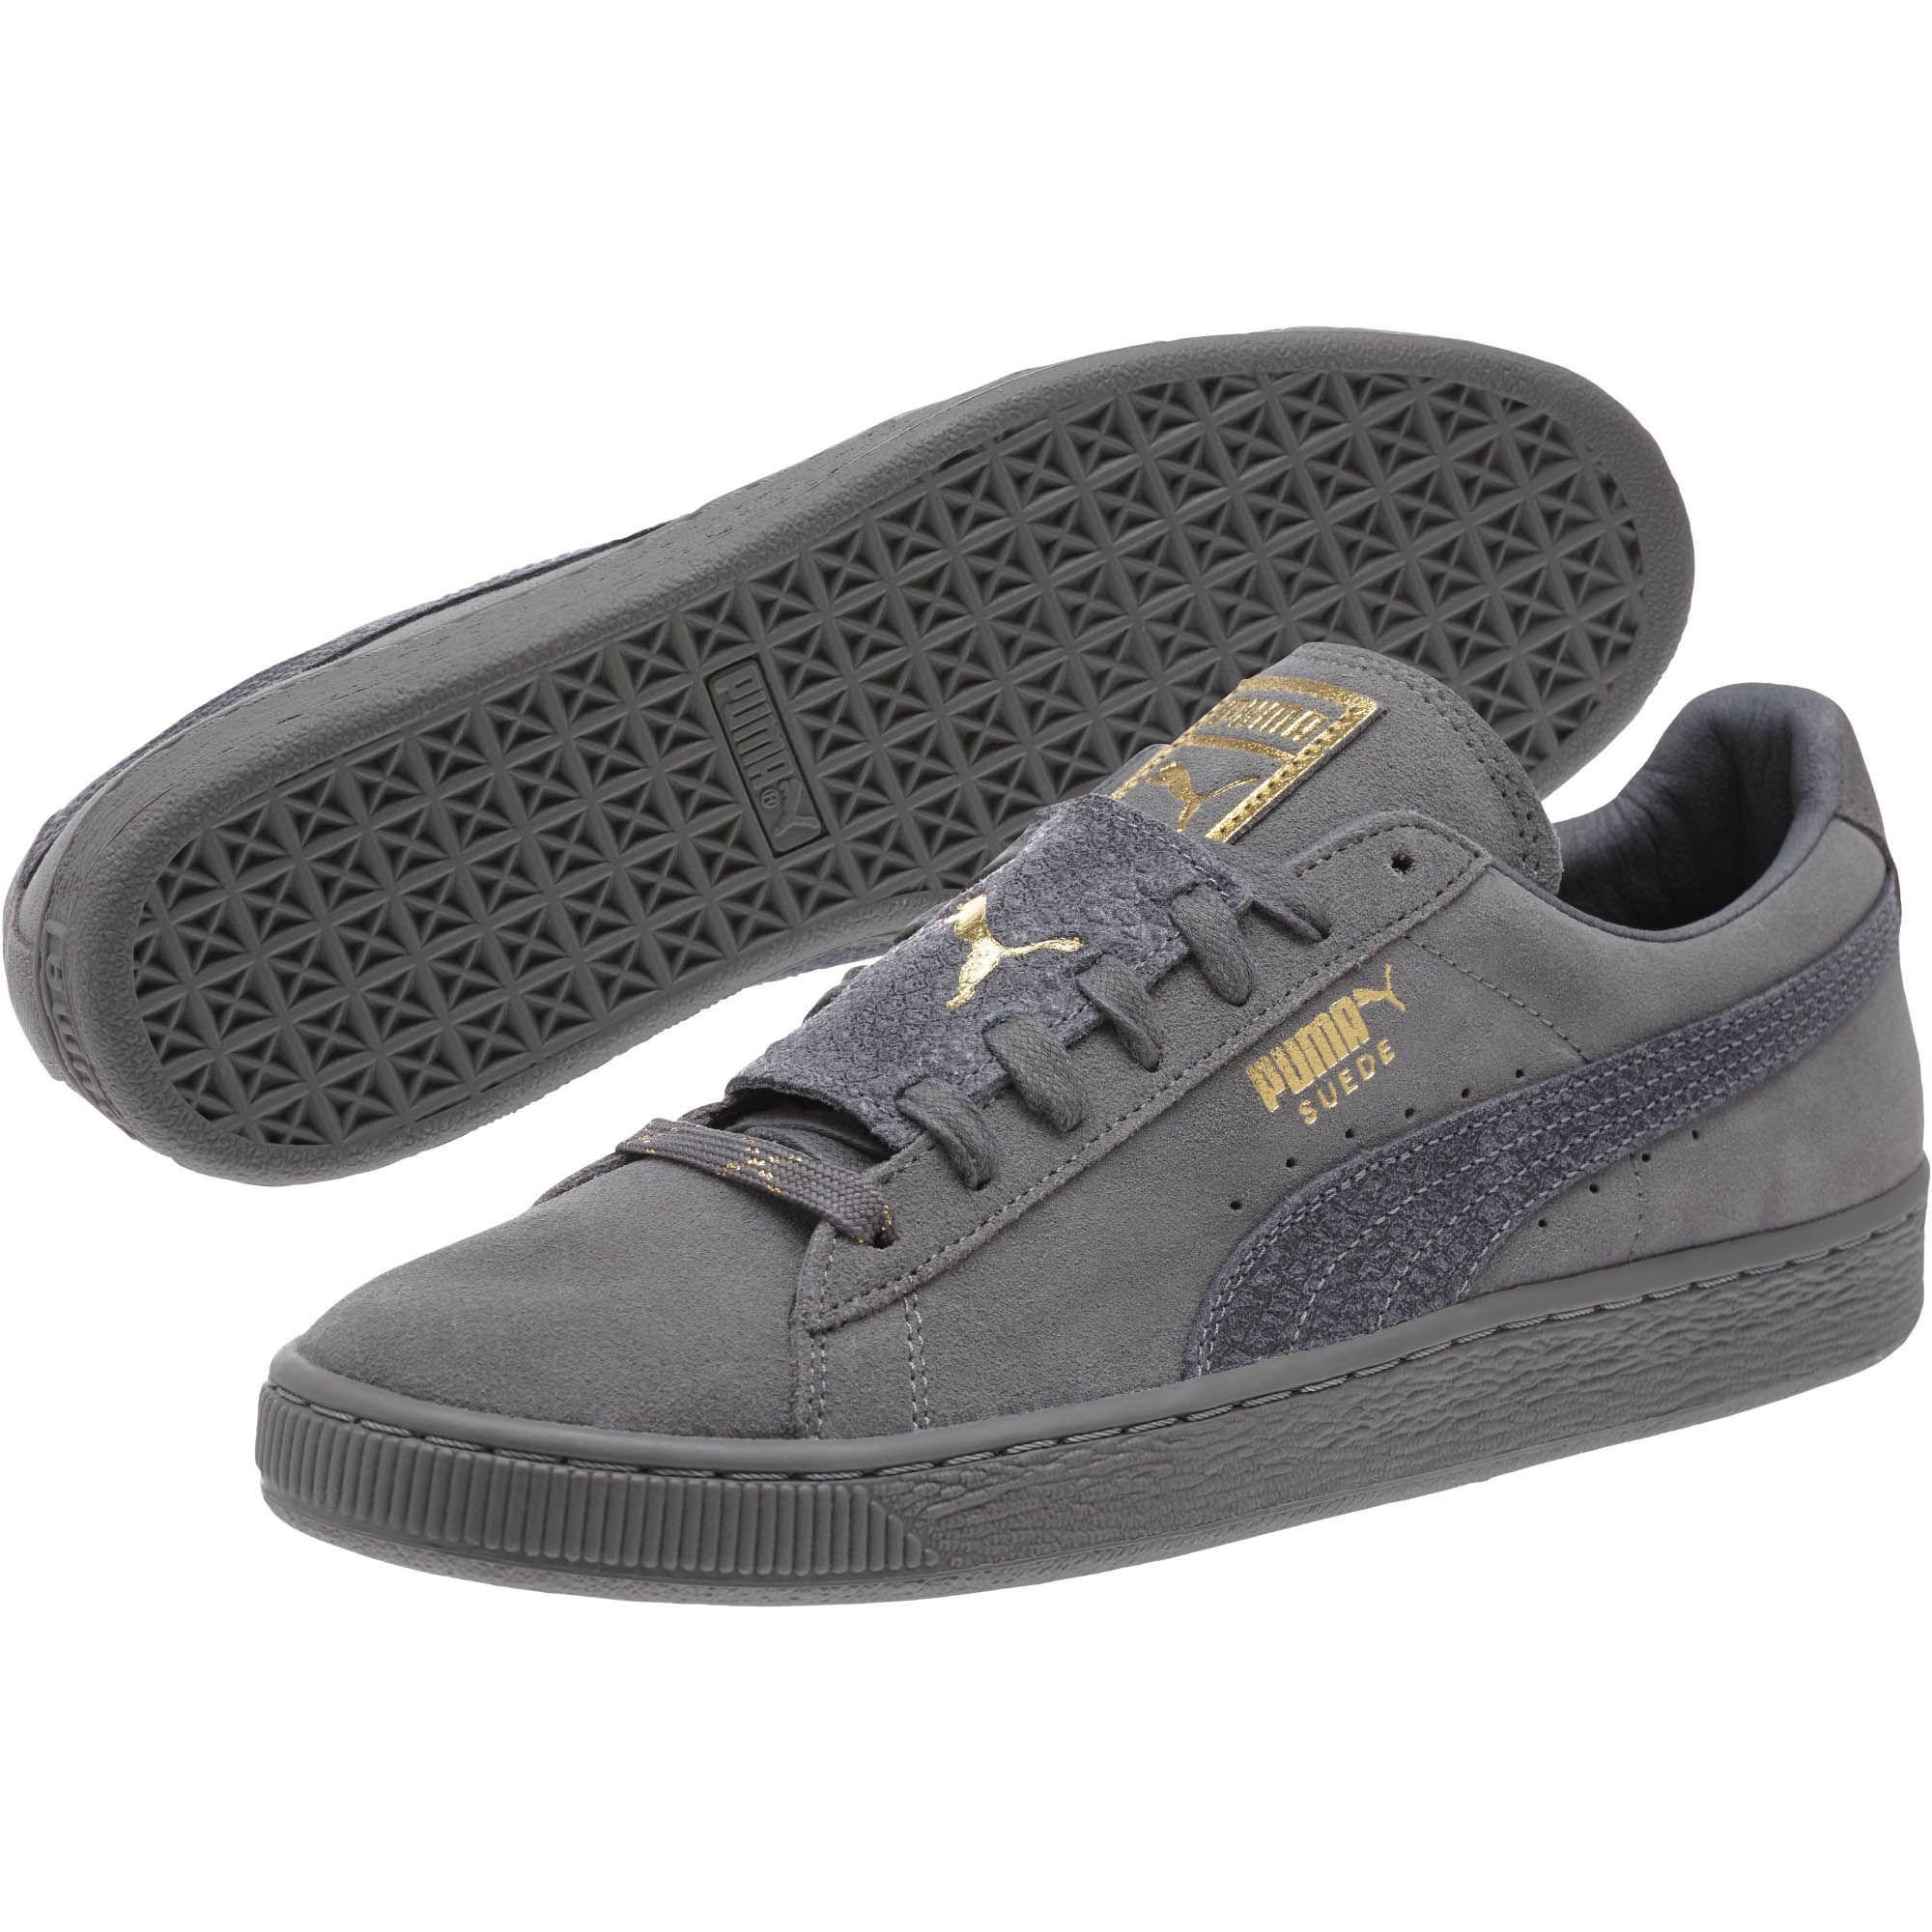 83e9b74ce2c5 Lyst - PUMA Suede Classic Epic Snake Gold Men s Sneakers in Gray for Men